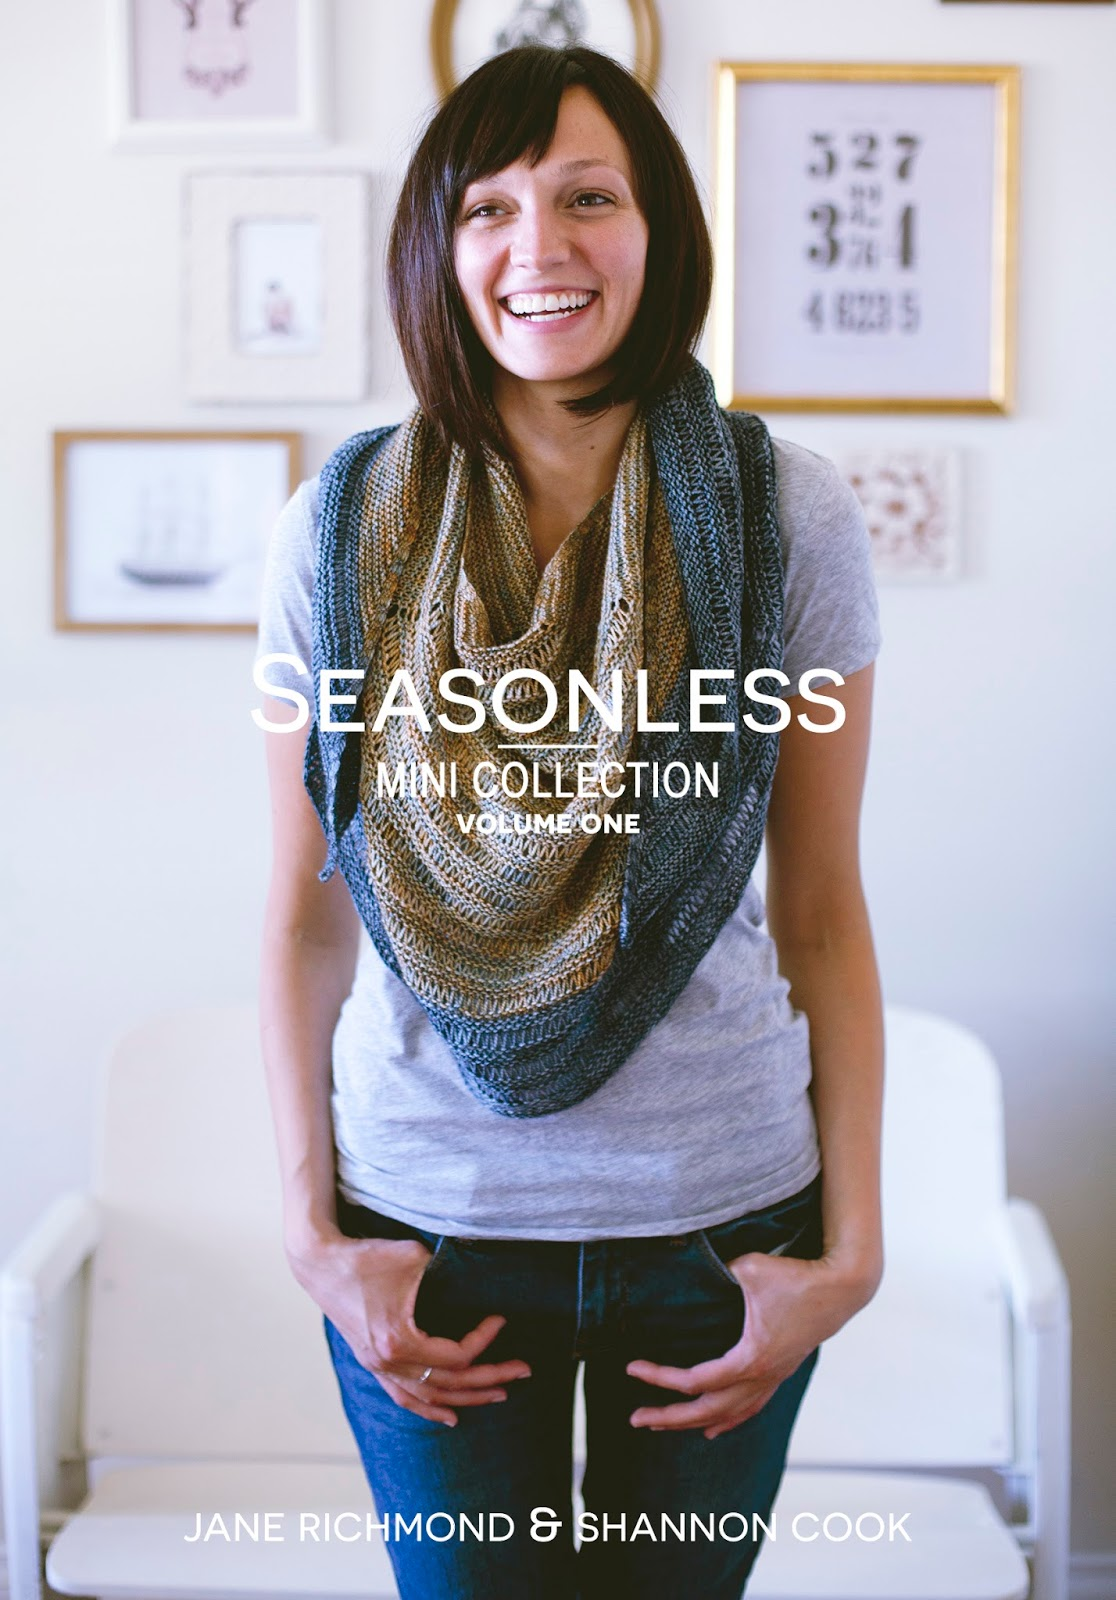 SEASONLESS: Mini Collection, Volume 1 by Jane Richmond and Shannon Cook #SEASONLESSknits #knitting #eBook #book #patterns